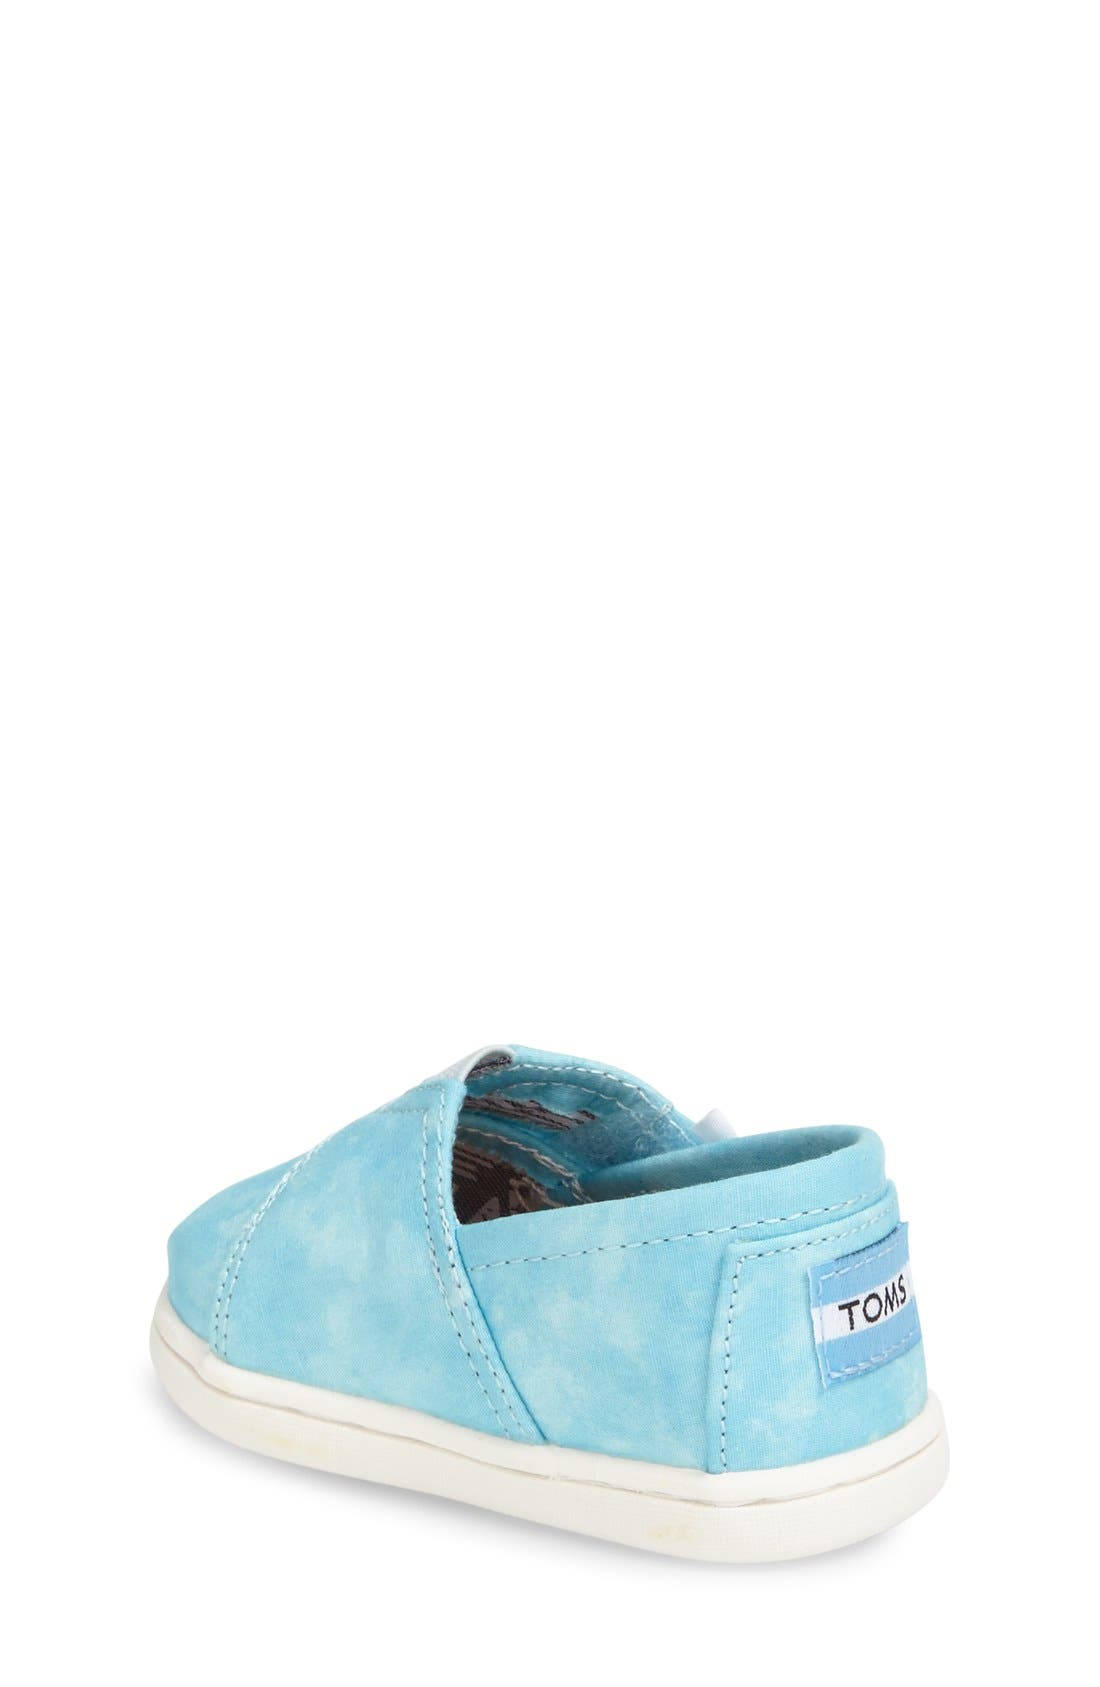 'Classic - Tiny' Print Slip-On,                             Alternate thumbnail 3, color,                             AQUA